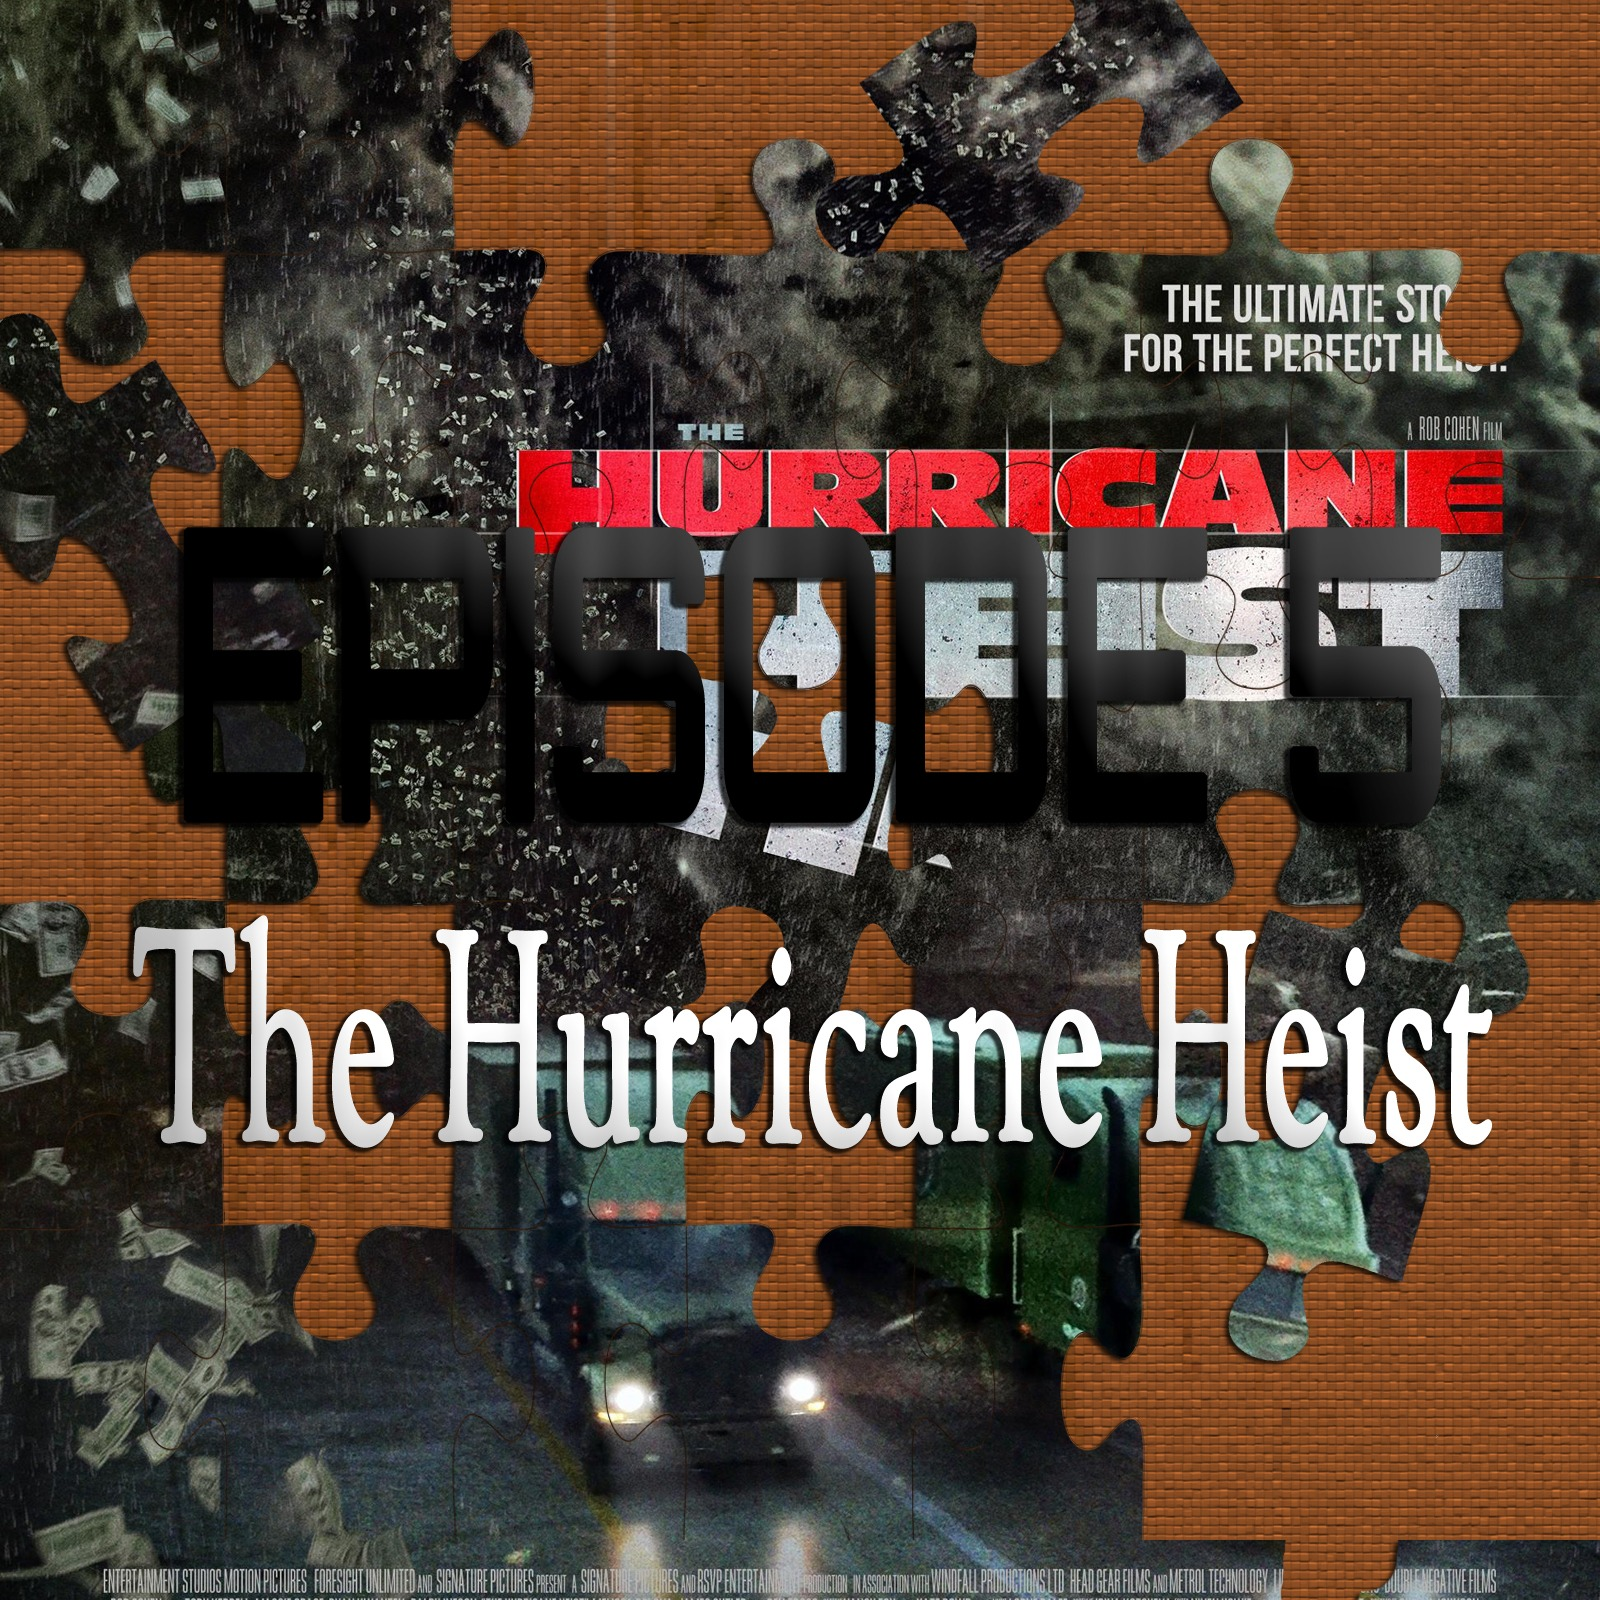 The Hurricane Heist (Featuring Chad Clinton Freeman)